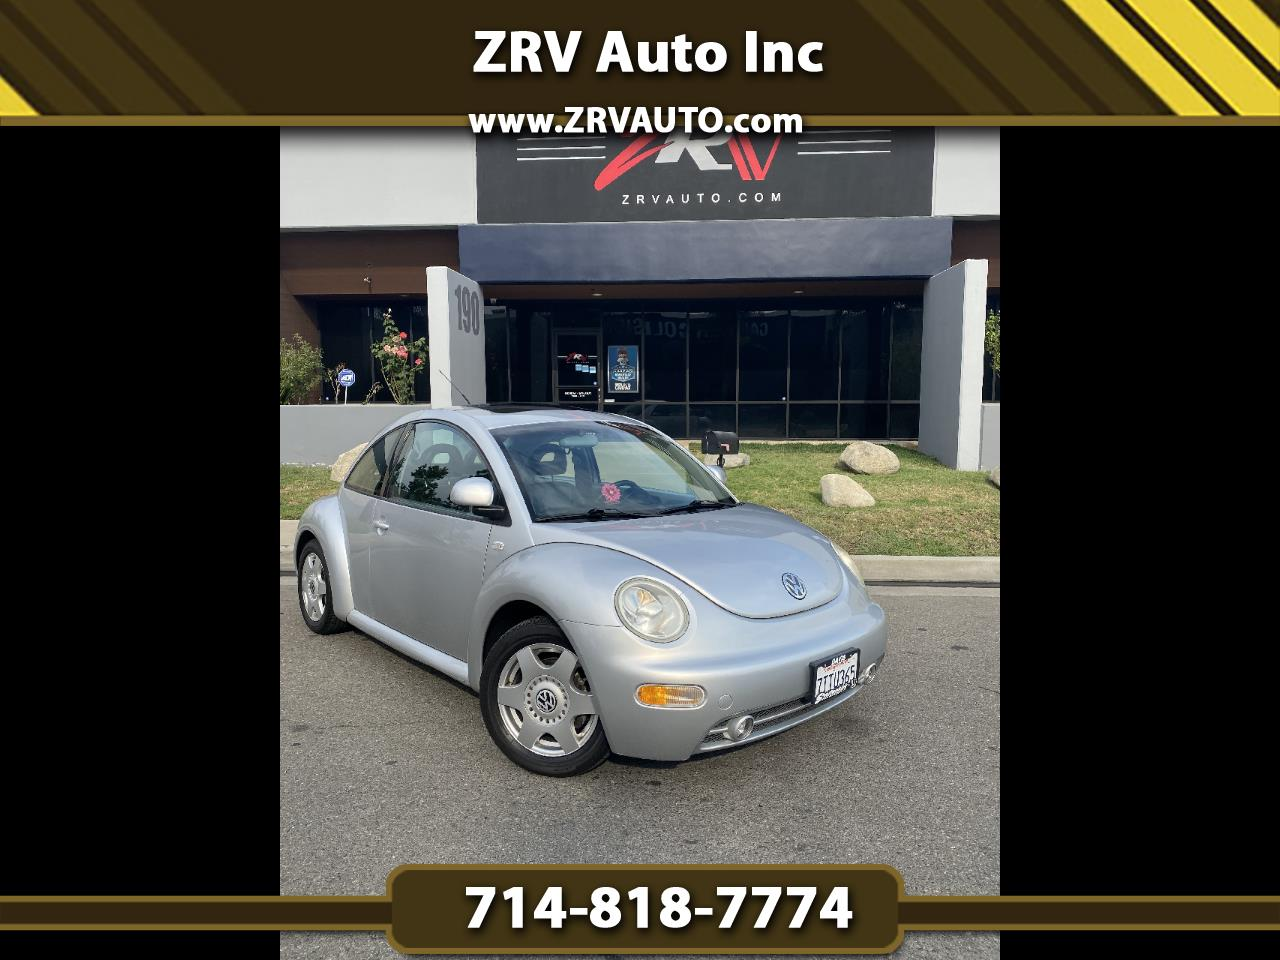 Volkswagen New Beetle 2dr Cpe GLX Turbo Auto 2000